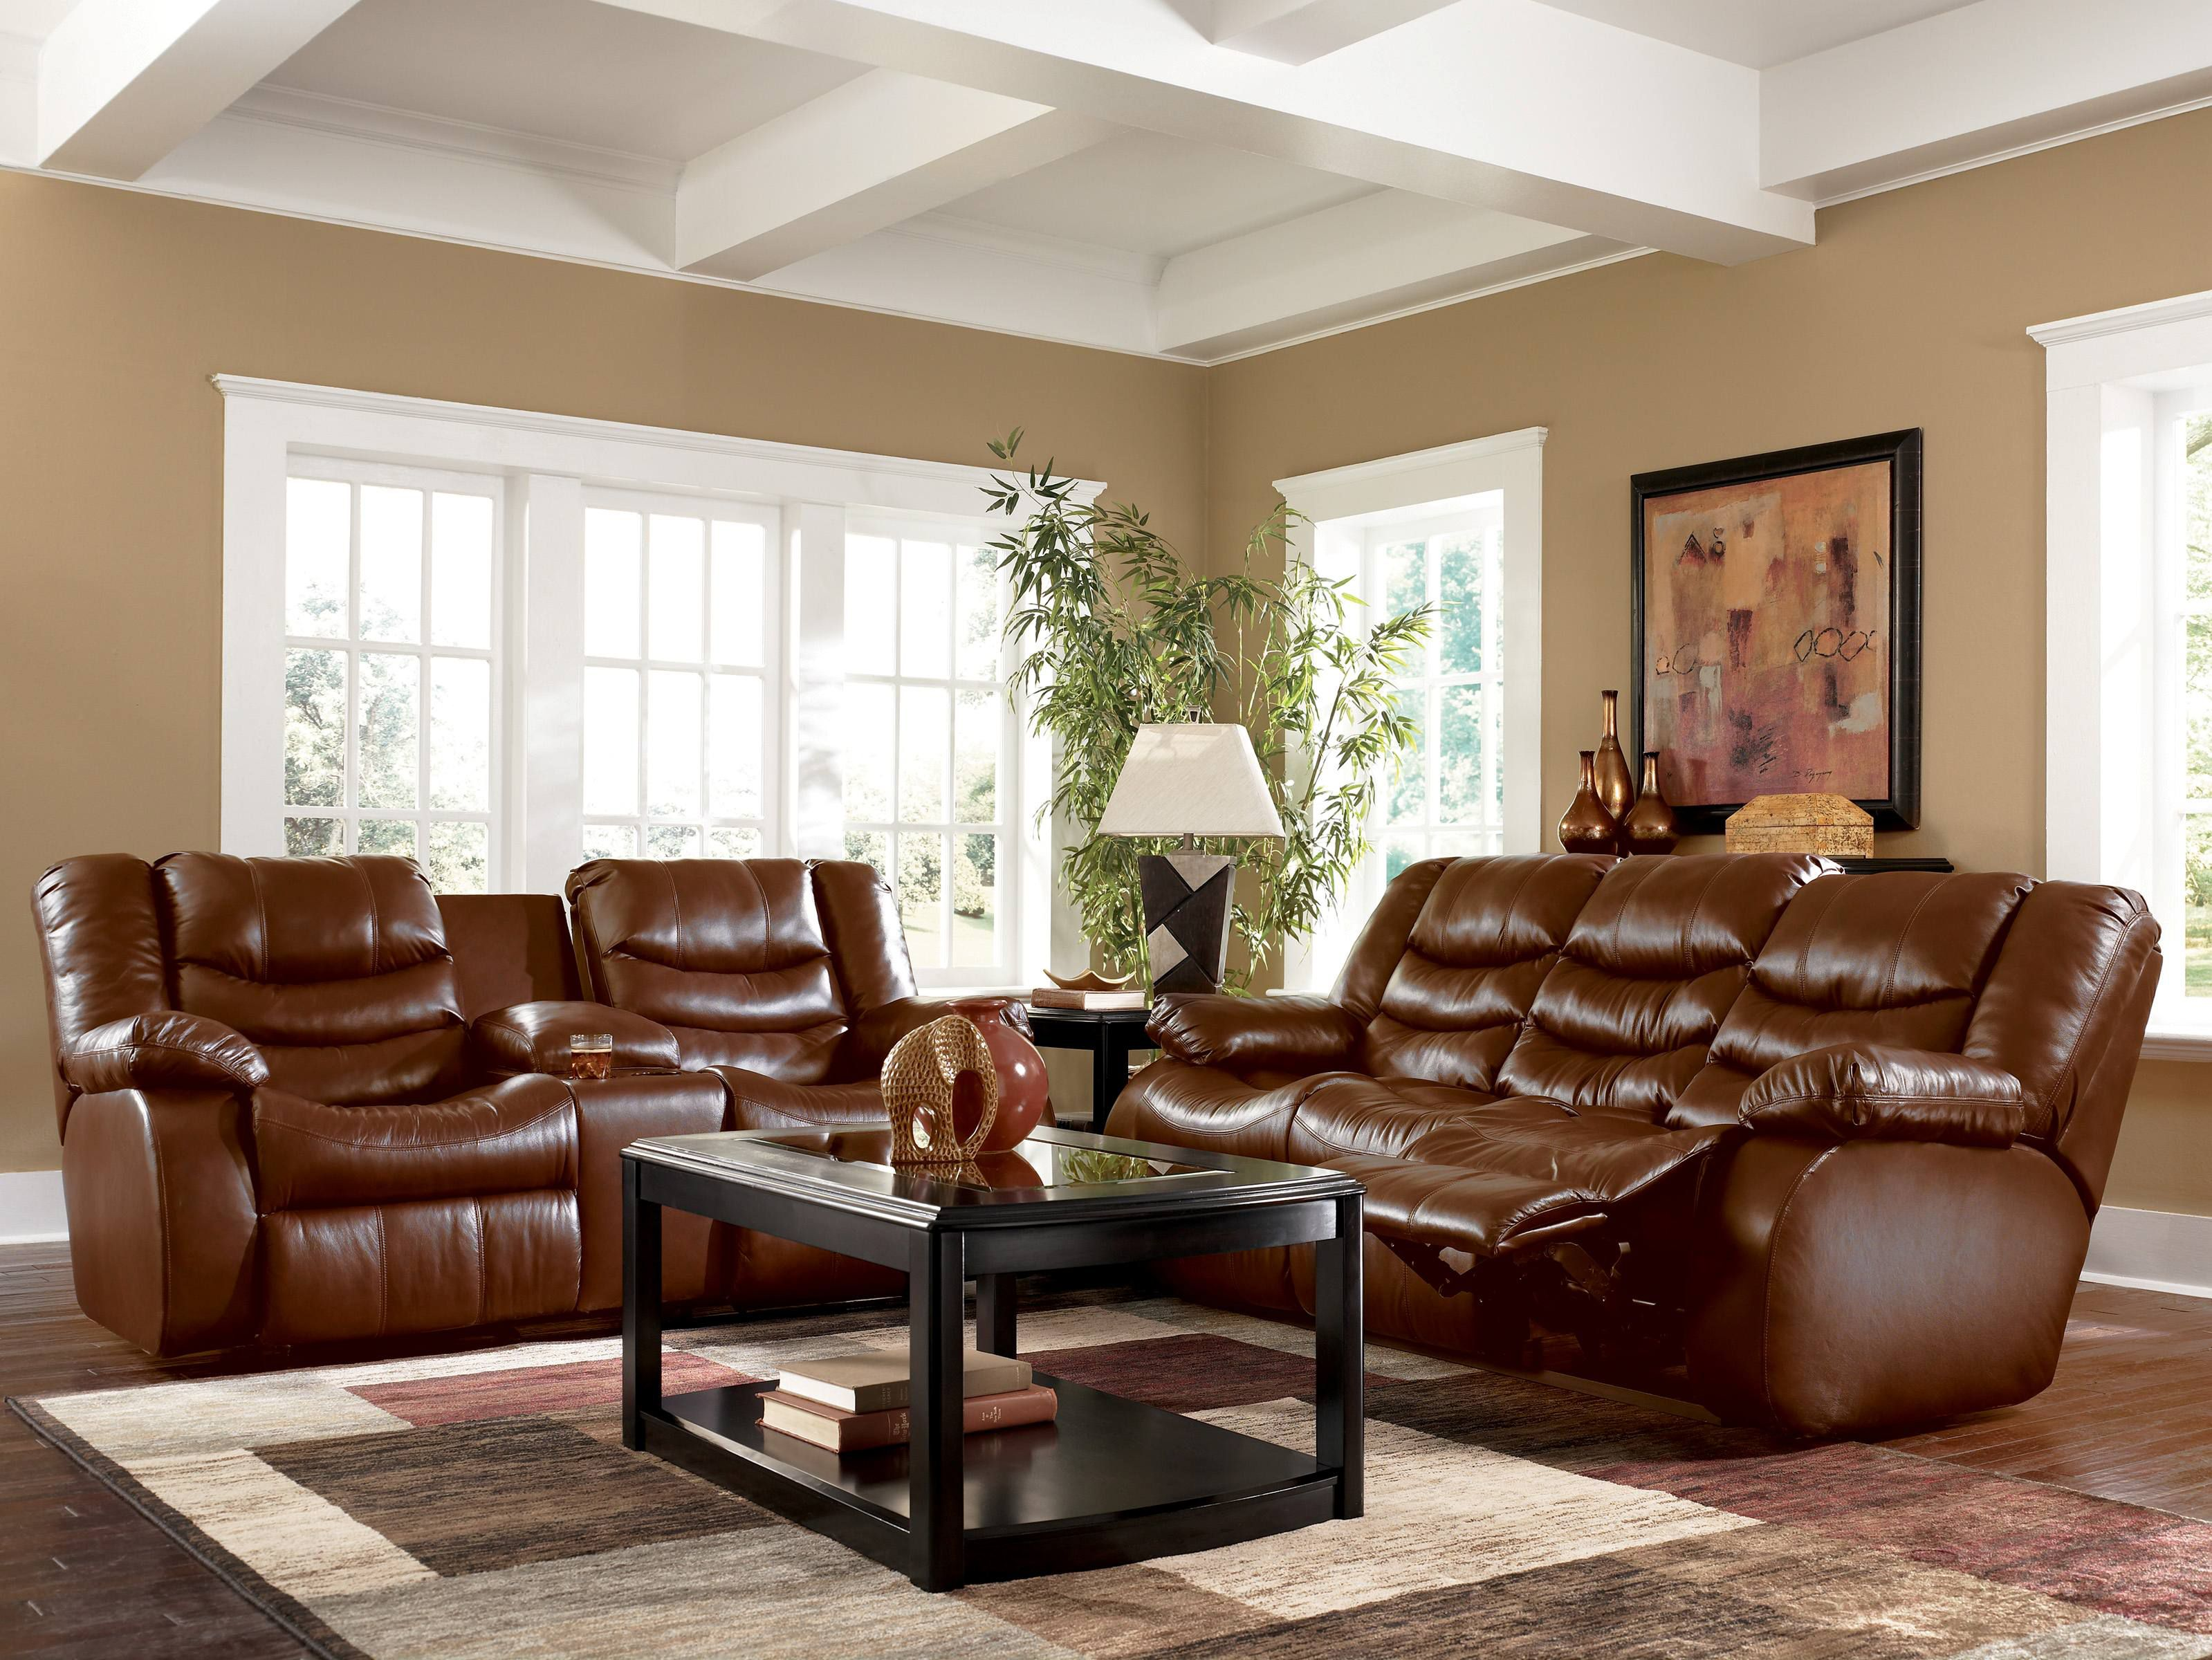 Interior Design Ideas Leather Sofa